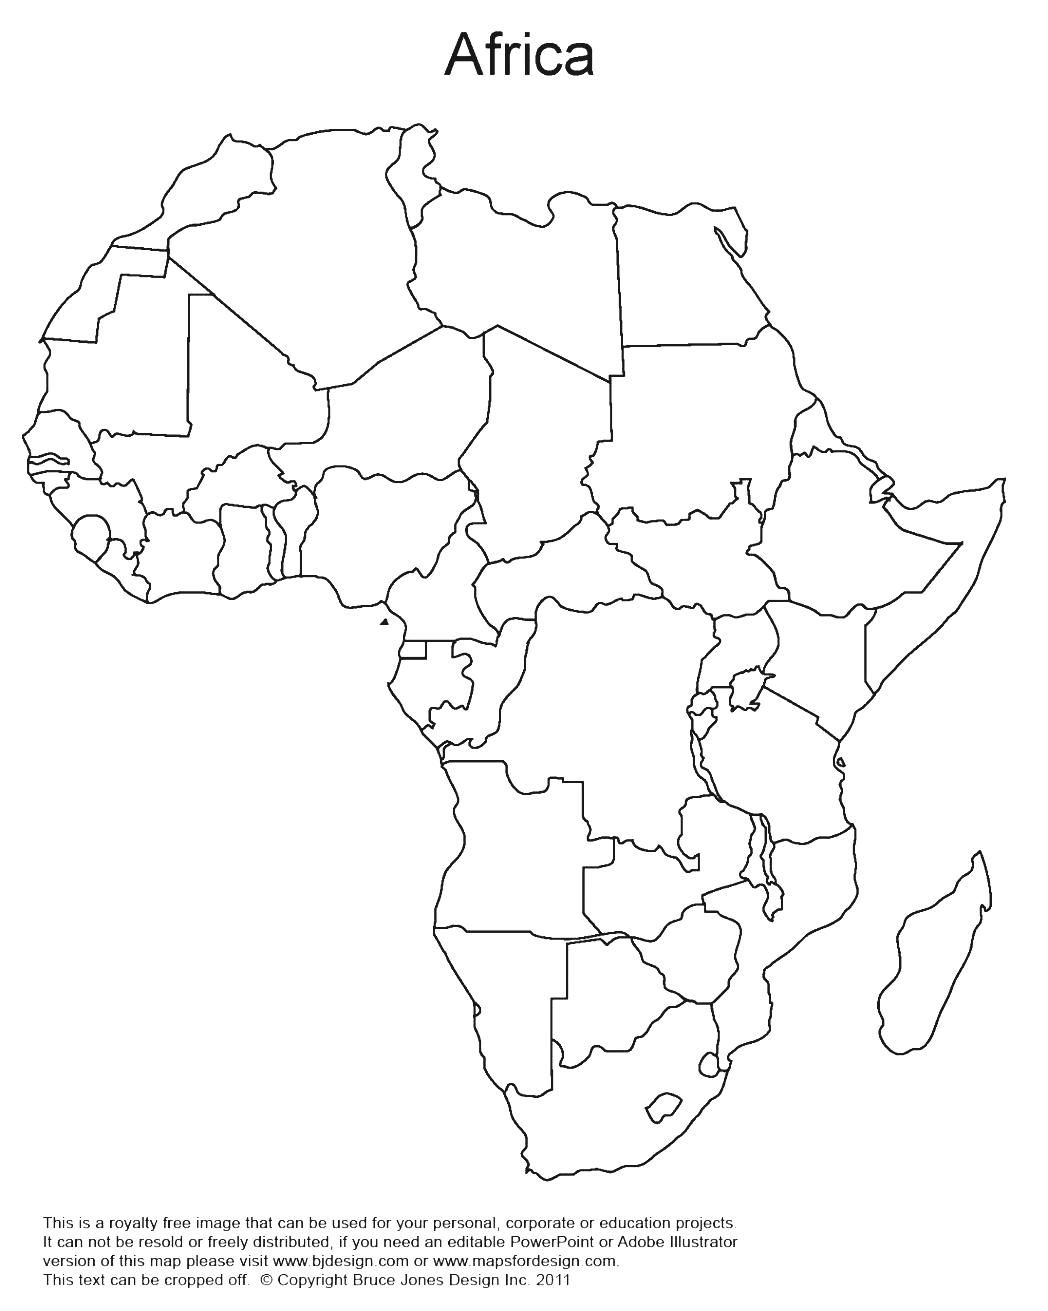 World Regional Printable Blank Maps Royalty Free Map With Countries And Capitals Africa